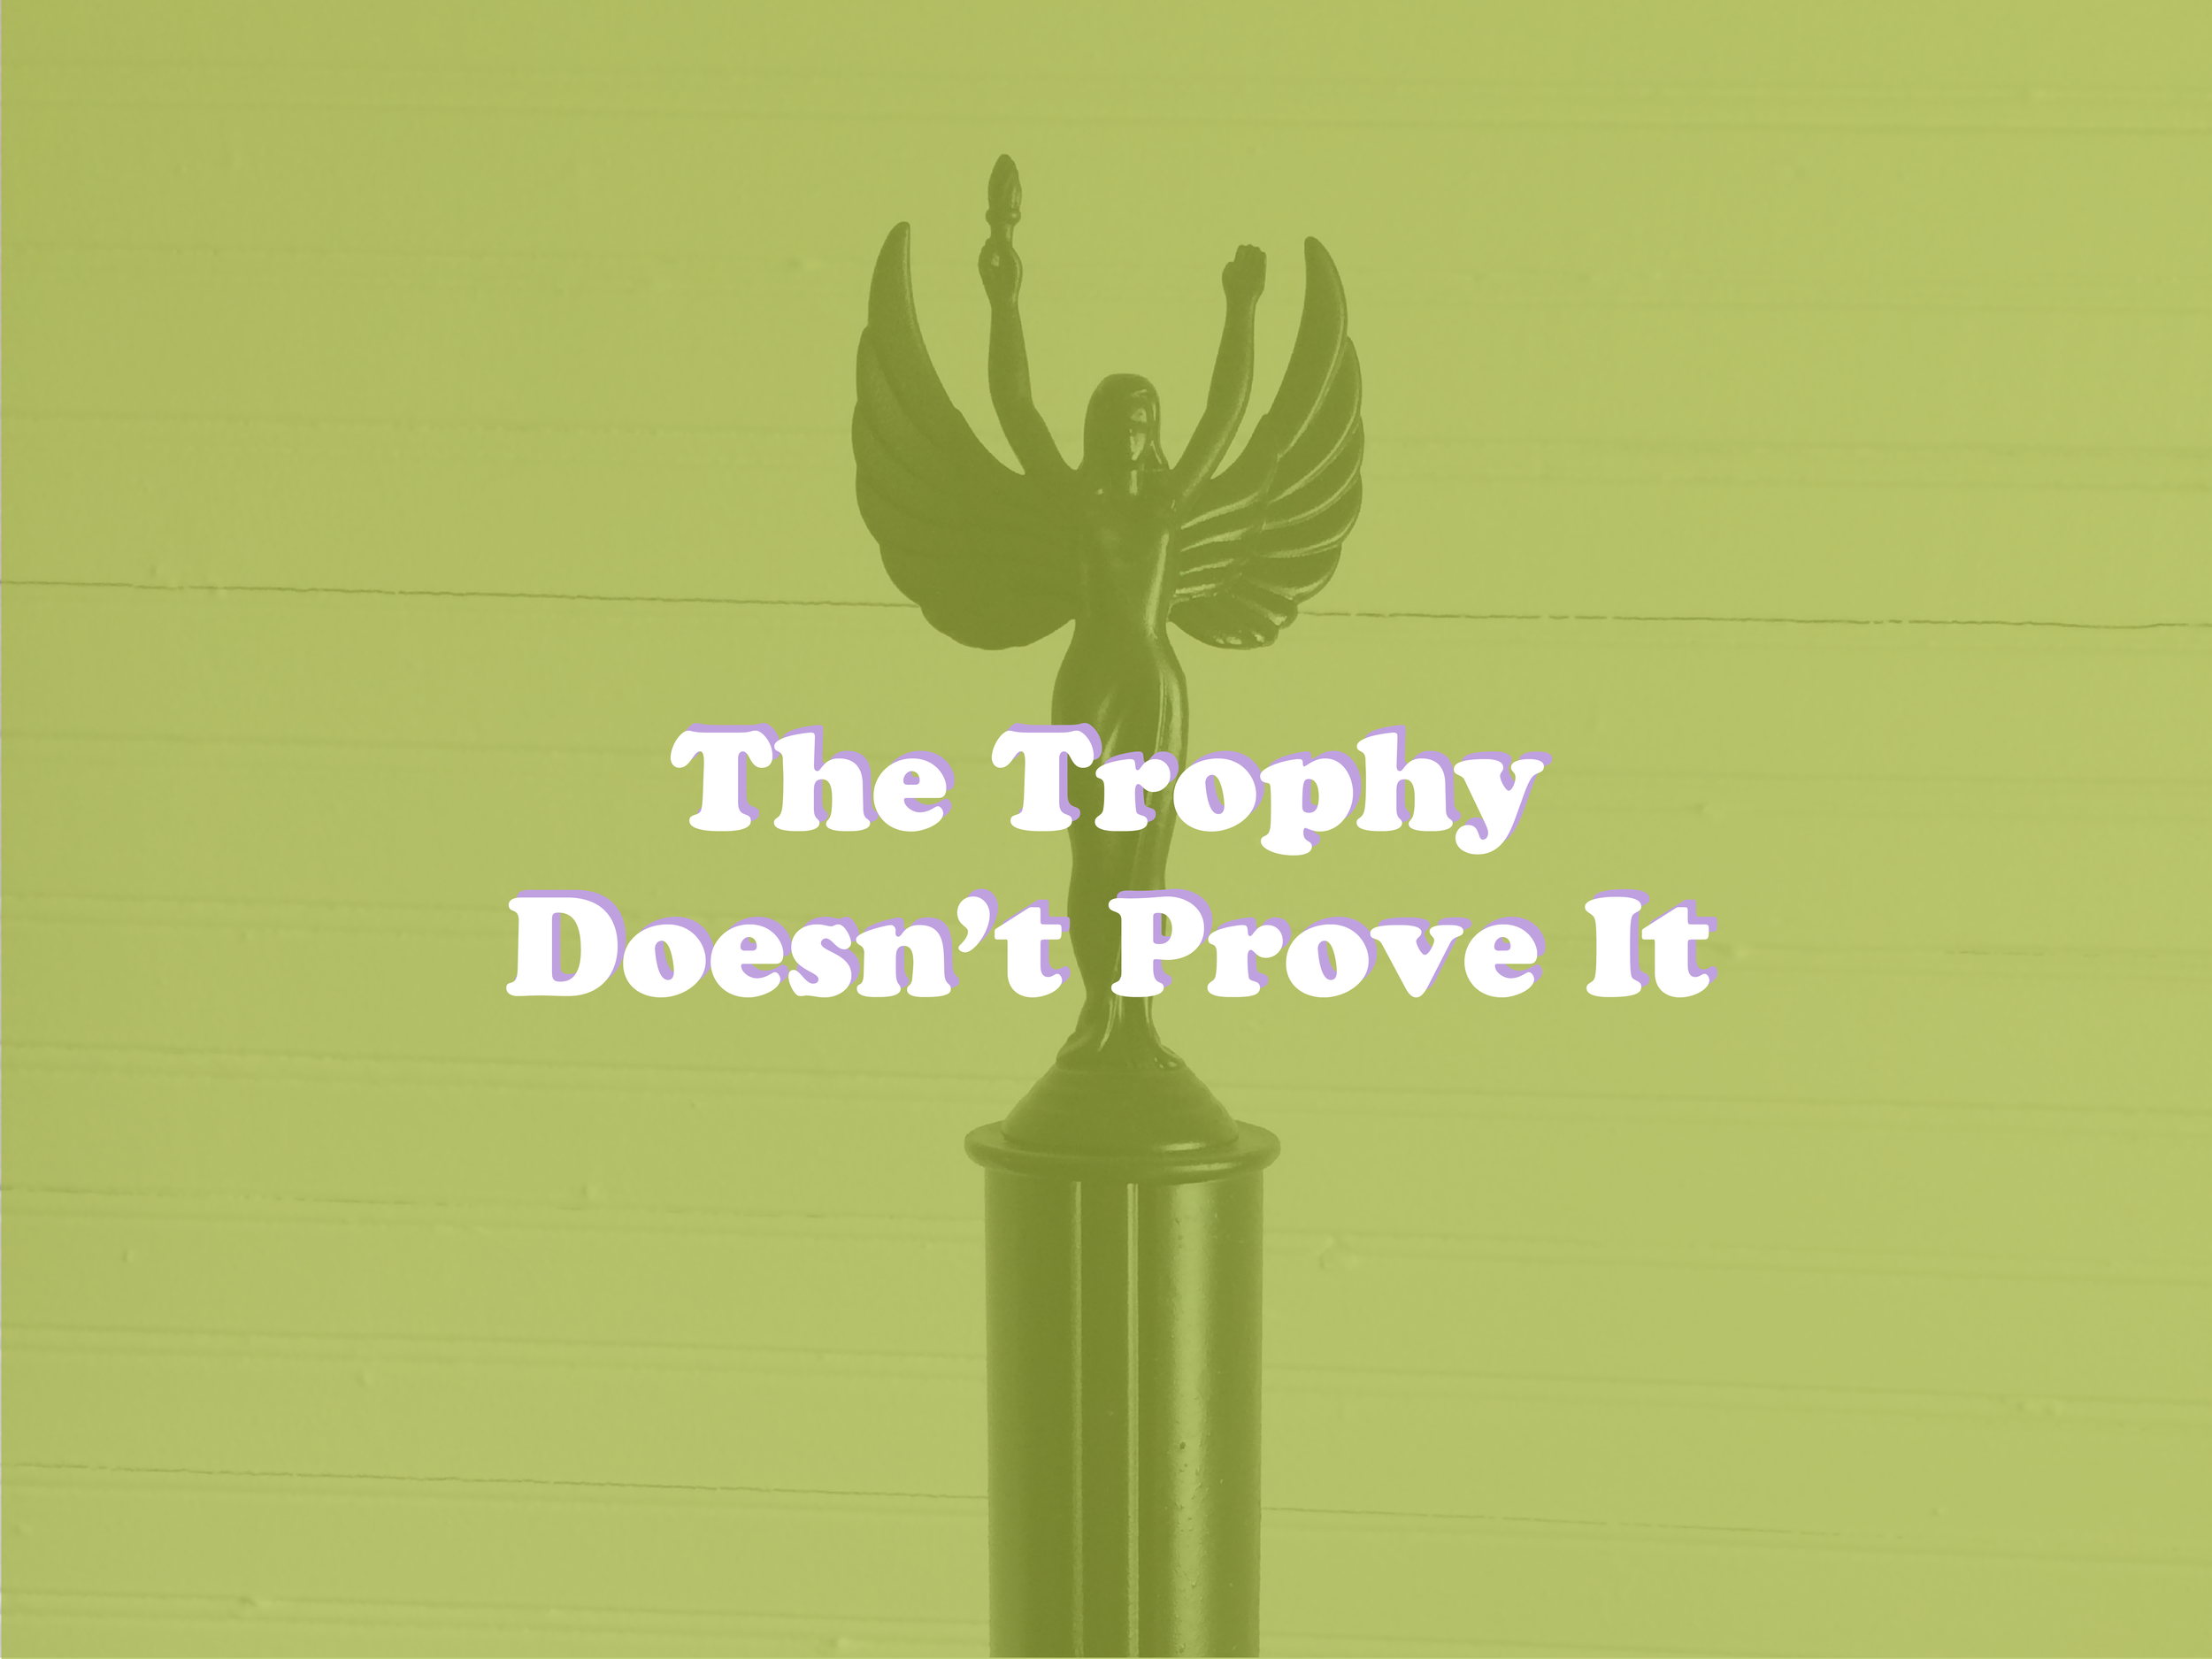 Have you ever felt like recognition is proof that you're successful and doing a good job? What about when the trophies don't come? Check out this story on how to start shifting your mindset around your confidence, success, wins and losses.